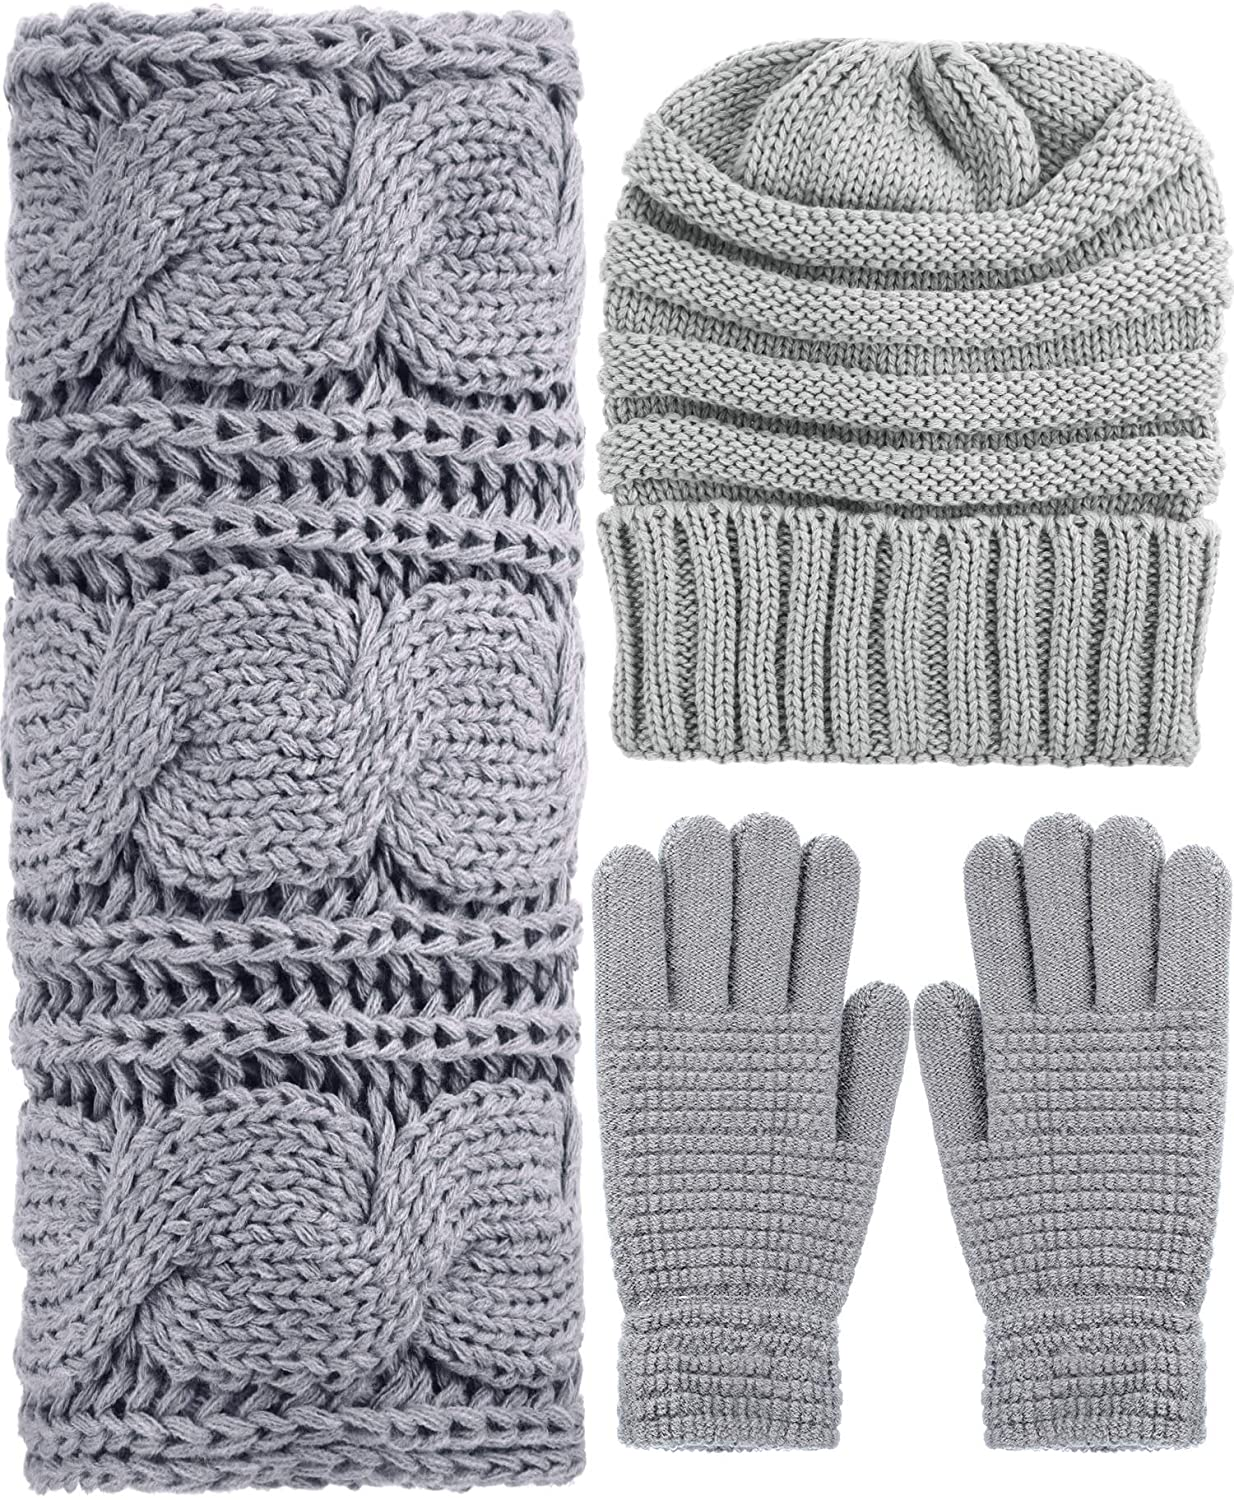 Winter Warm Knit Set - Beanie Hat, Knitted Scarf and Stretch Gloves for Women Men (Grey)